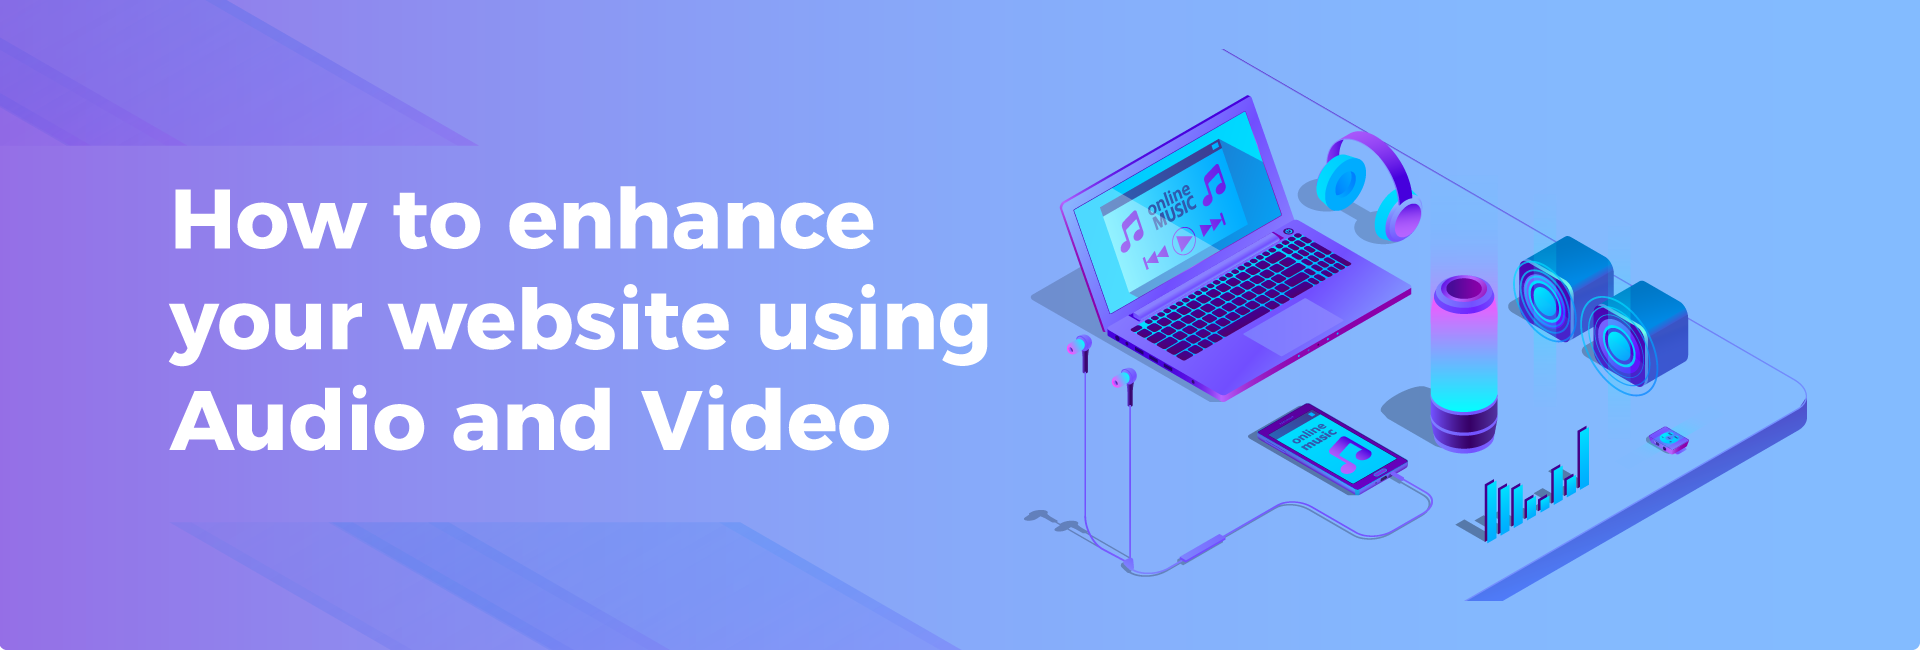 How to use Video and Audio to enhance your Website